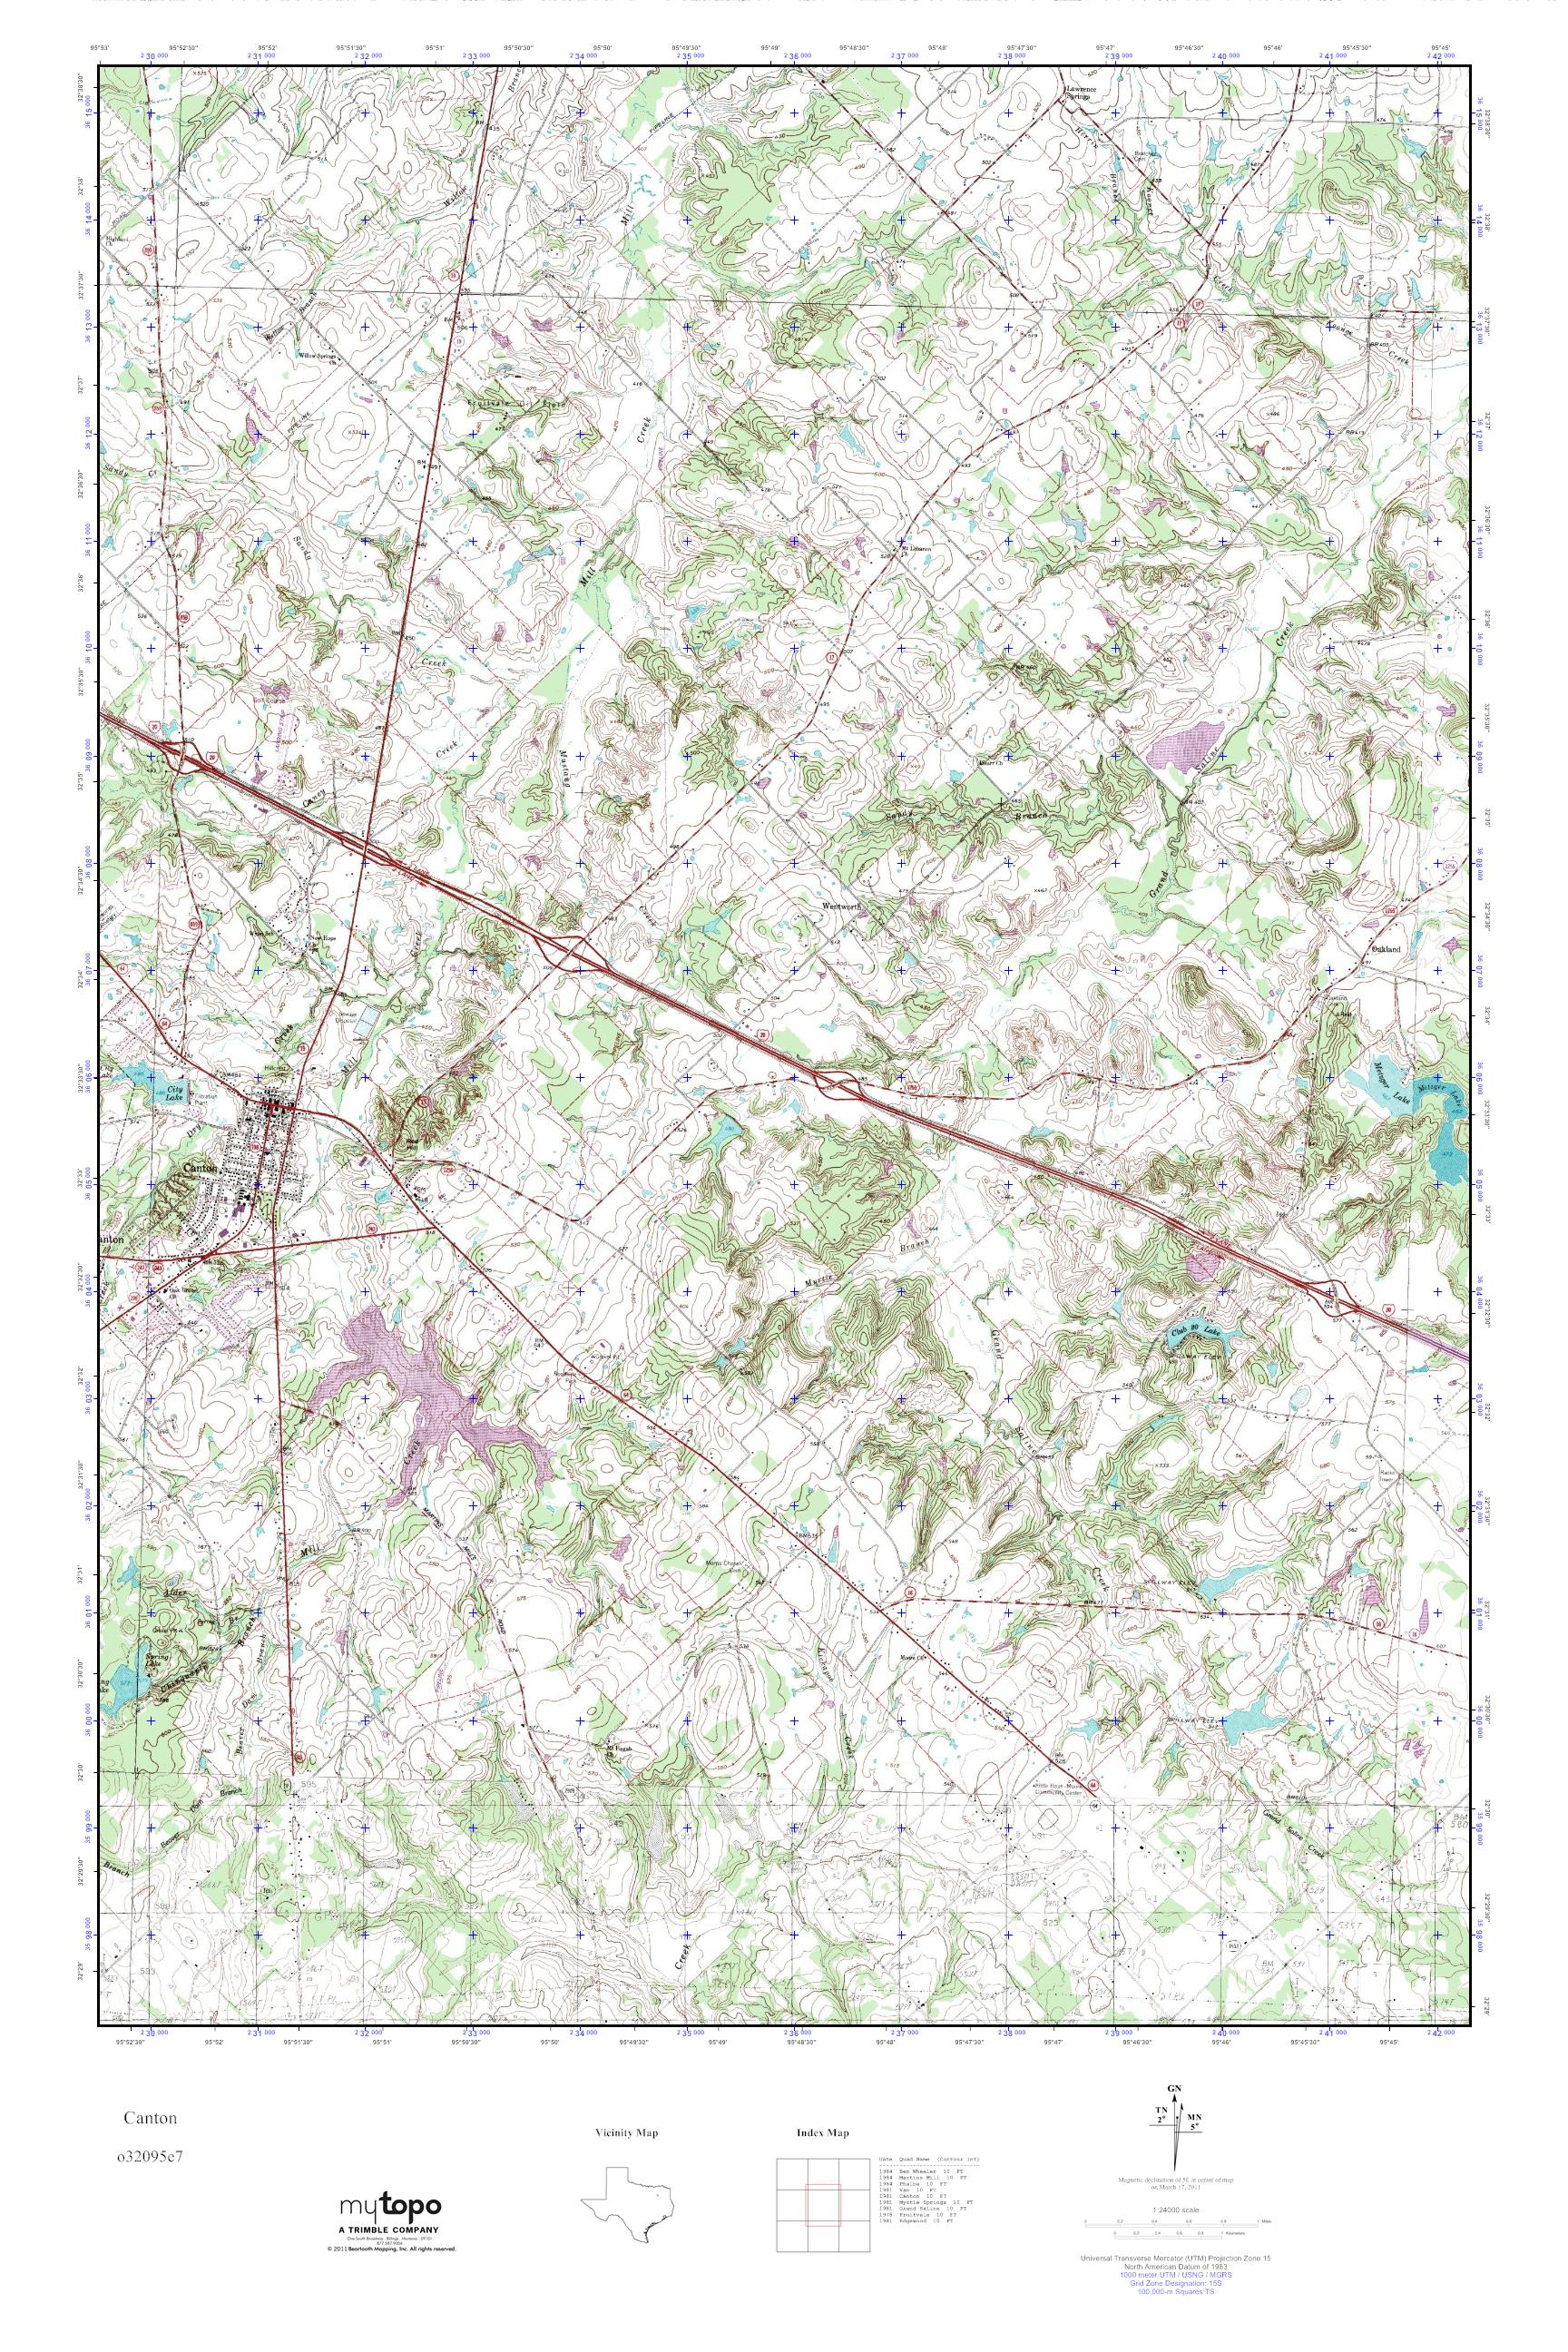 Mytopo Canton, Texas Usgs Quad Topo Map - Canton Texas Map